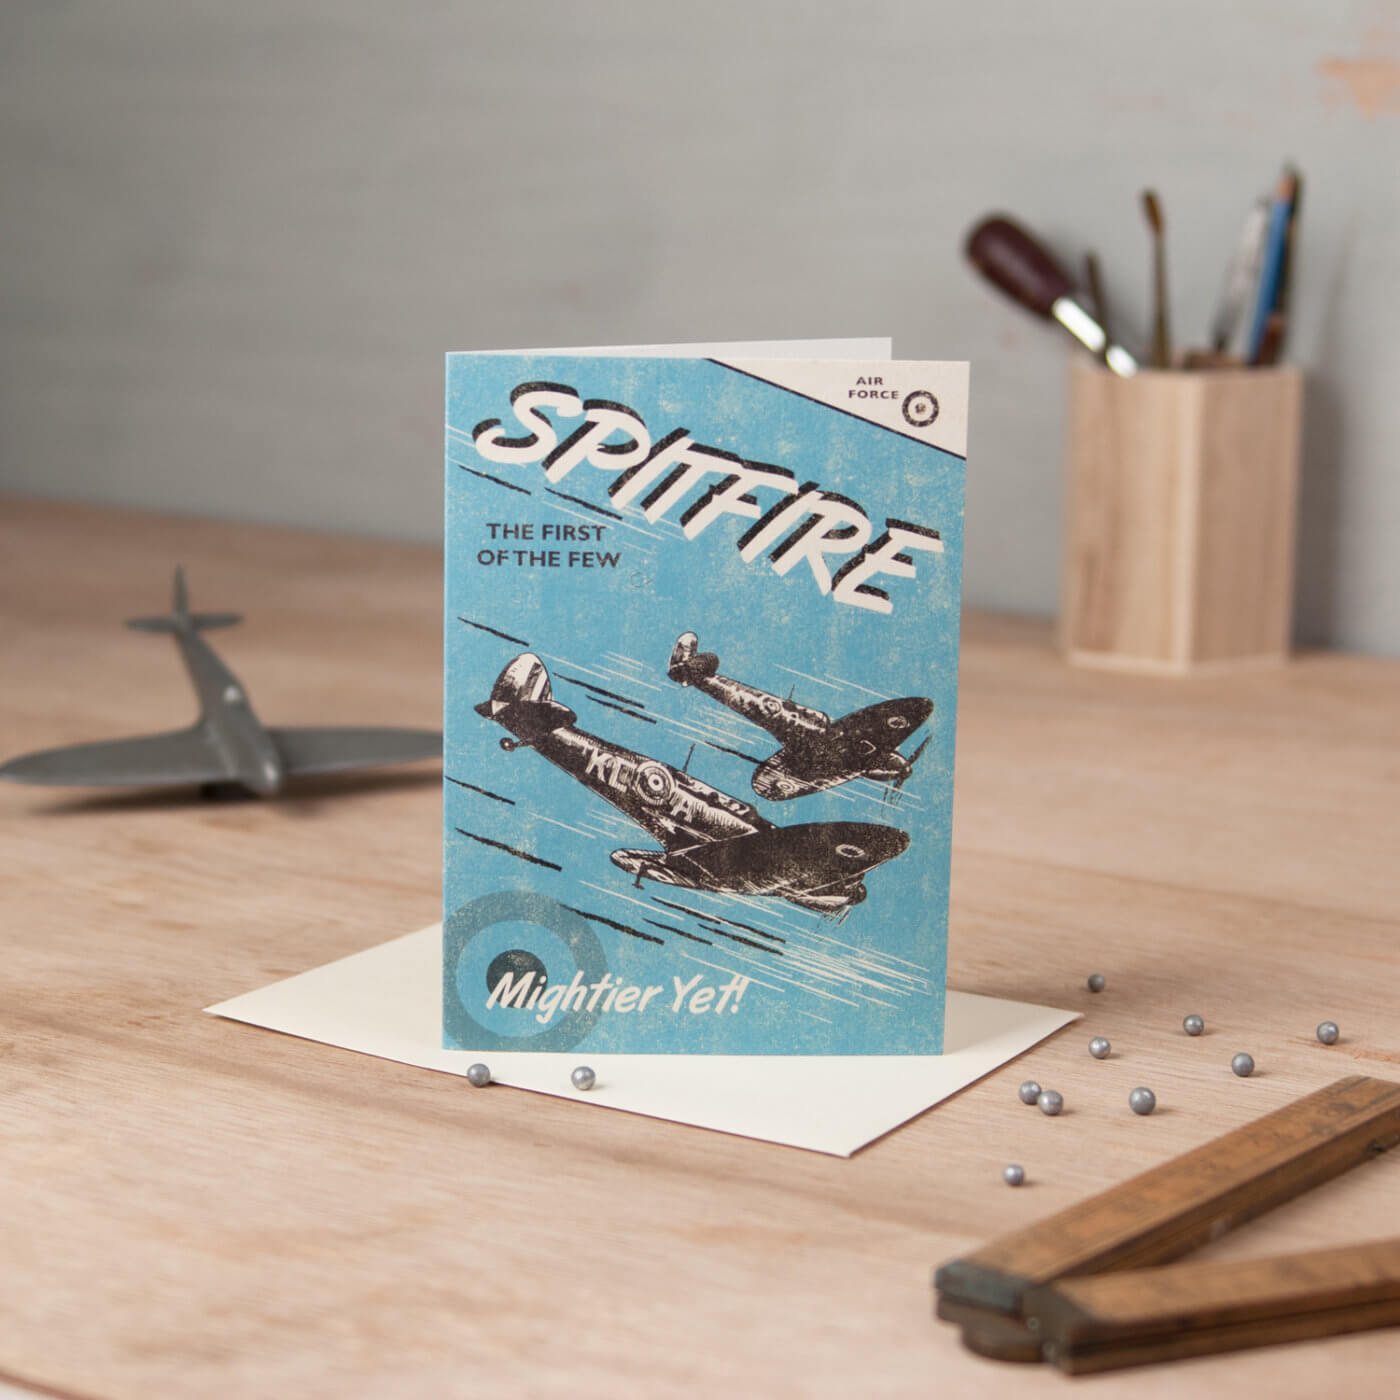 Spitfire mens range greetings card with silver bullets and industrial props